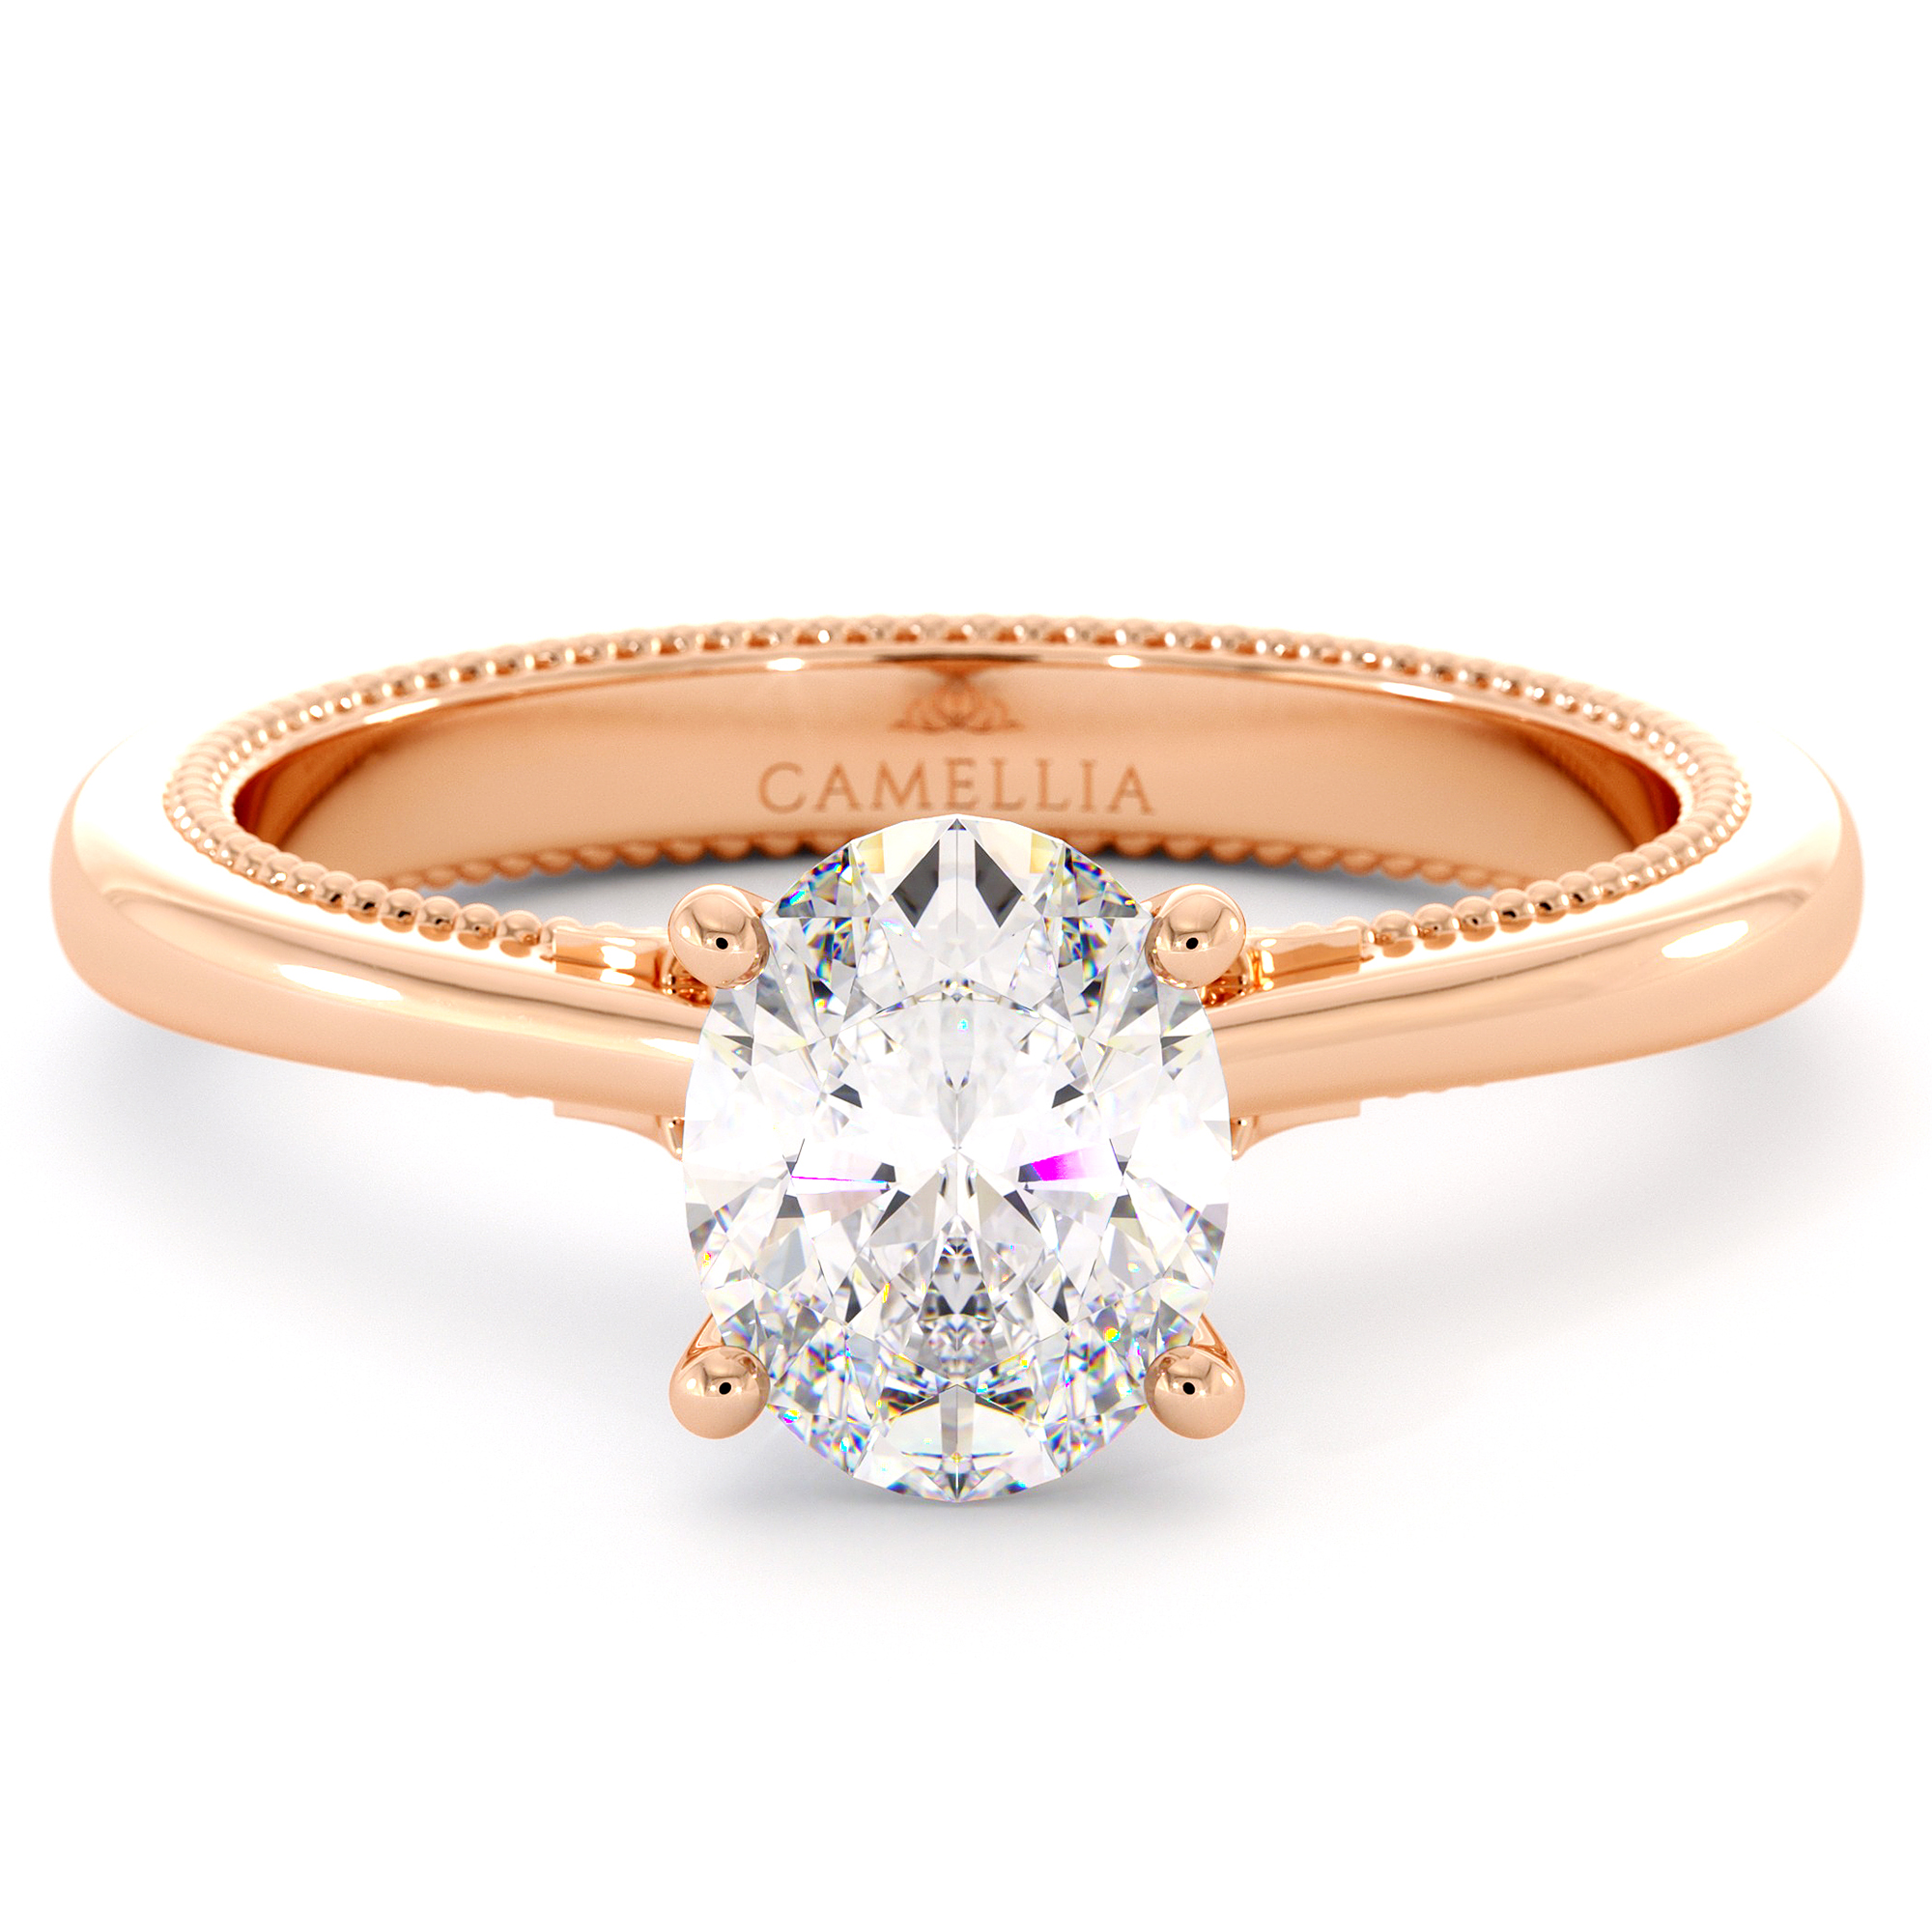 Moissanite Engagement Ring Oval Cut Gemstone 14K Rose Gold Solitaire Classic Ring